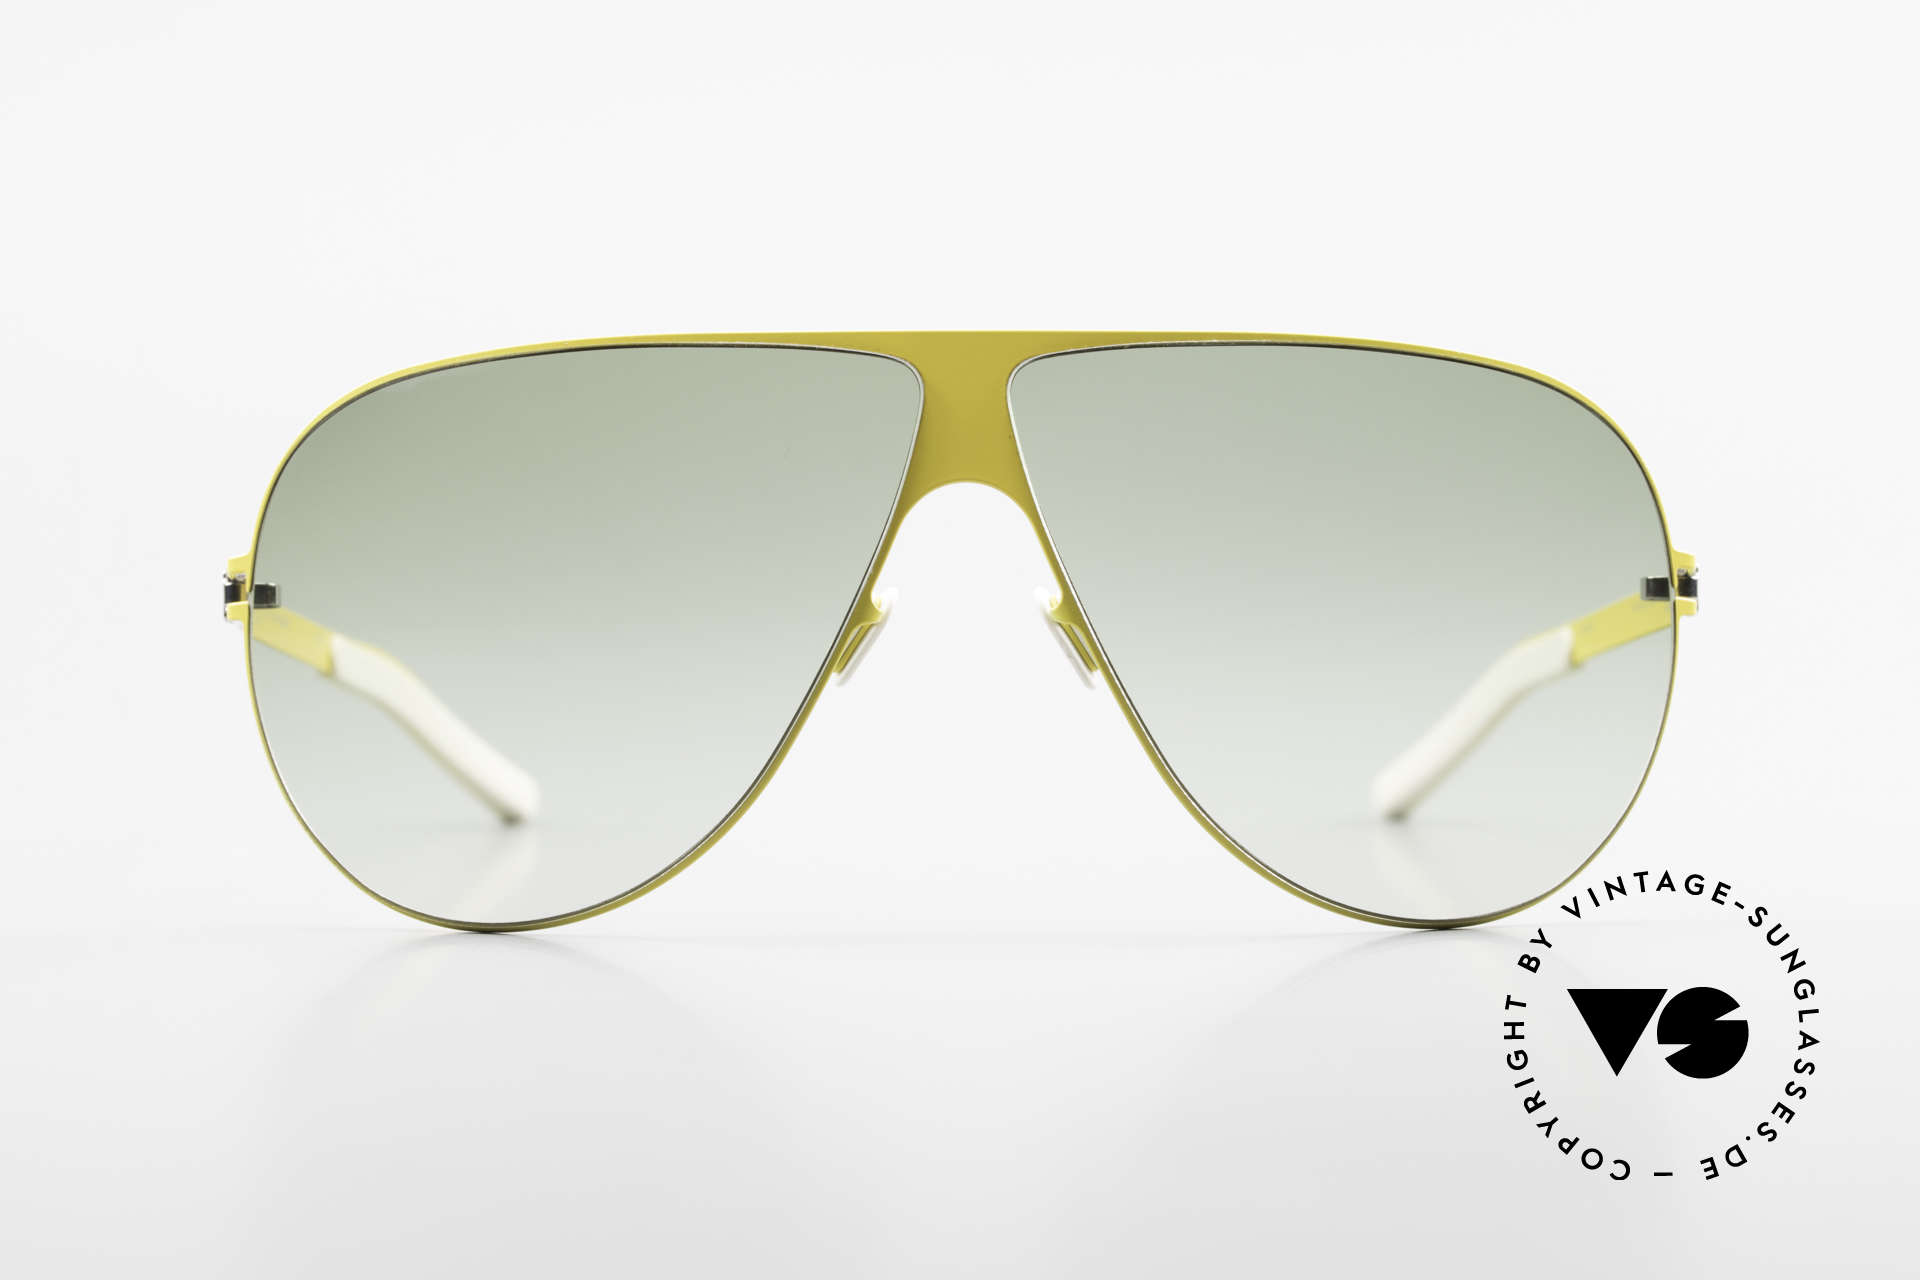 Mykita Elliot Tom Cruise Aviator Shades 2011, MYKITA: the youngest brand in our vintage collection, Made for Men